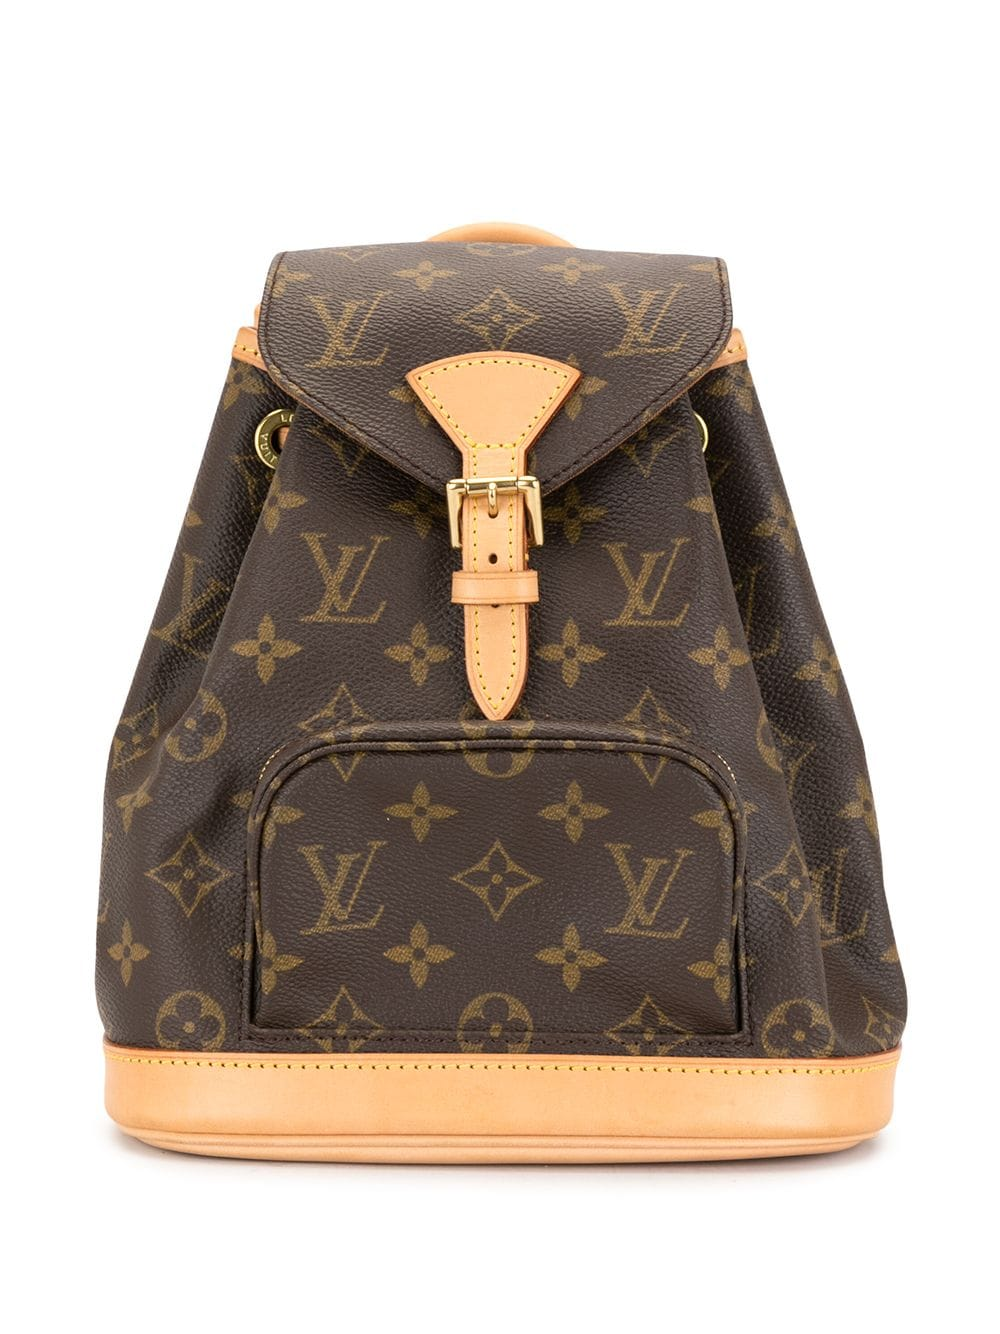 Louis Vuitton 1996 pre-owned Mini Montsouris Rucksack - Braun